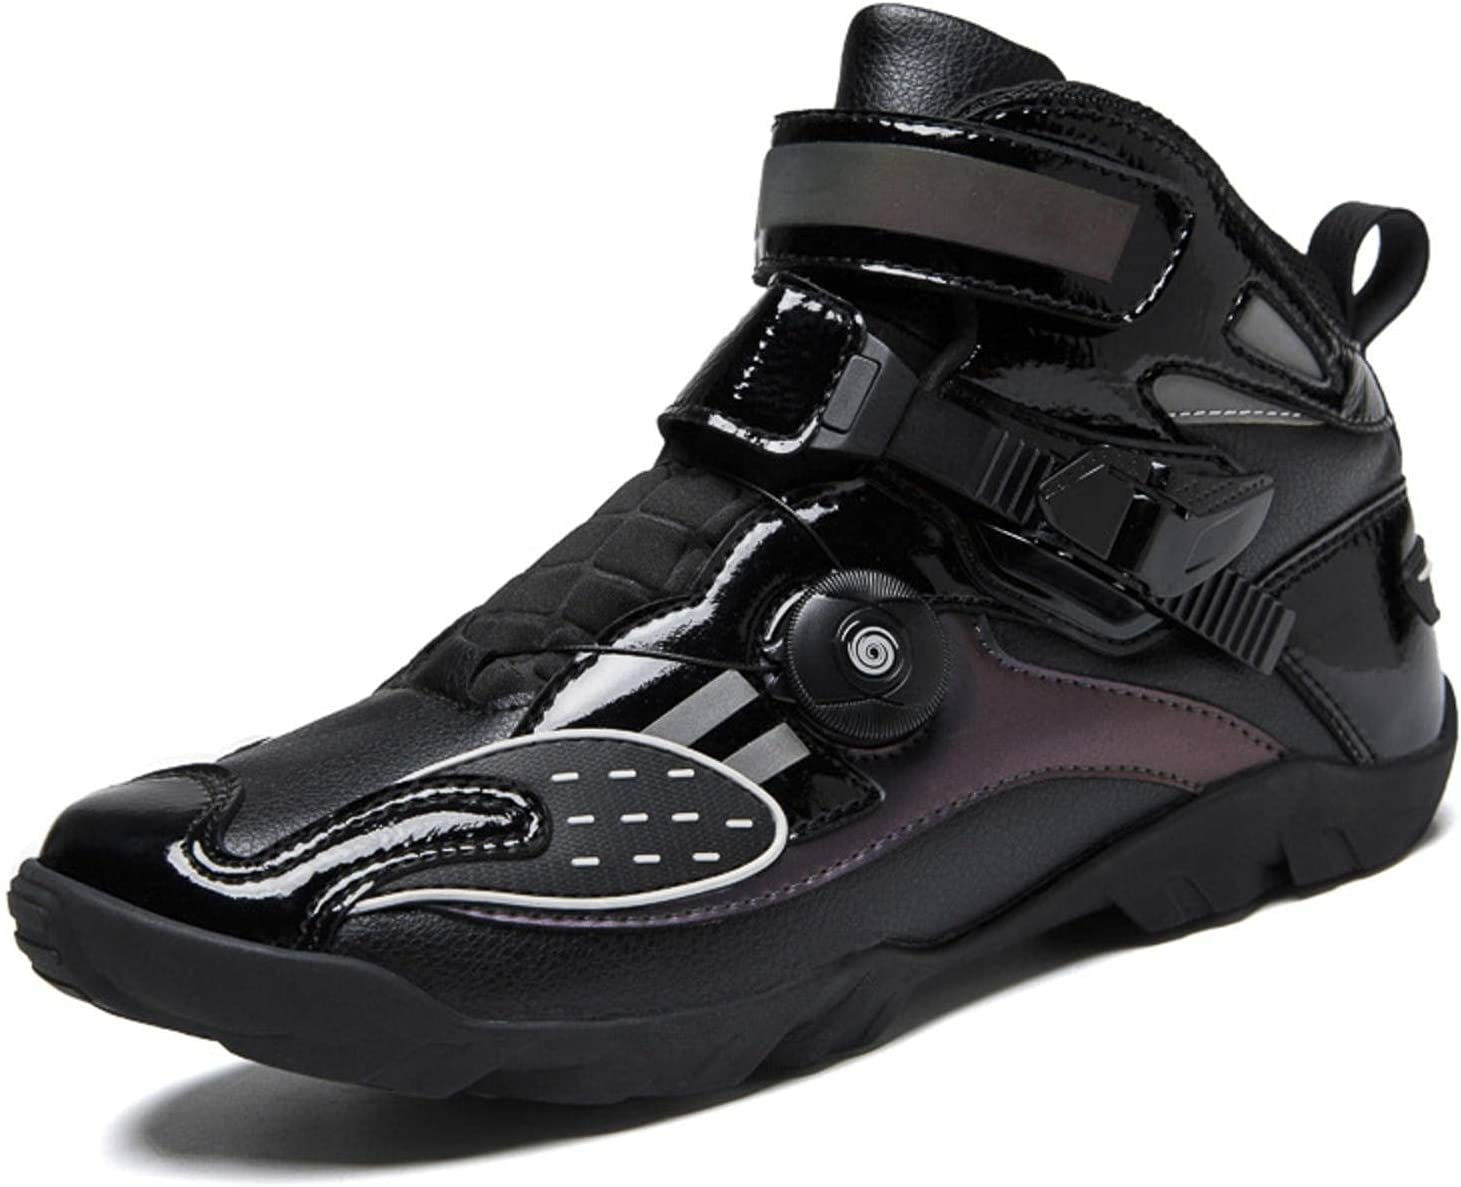 N\C service Bicycle Shoes Under blast sales Motorcycle Sports Cycling